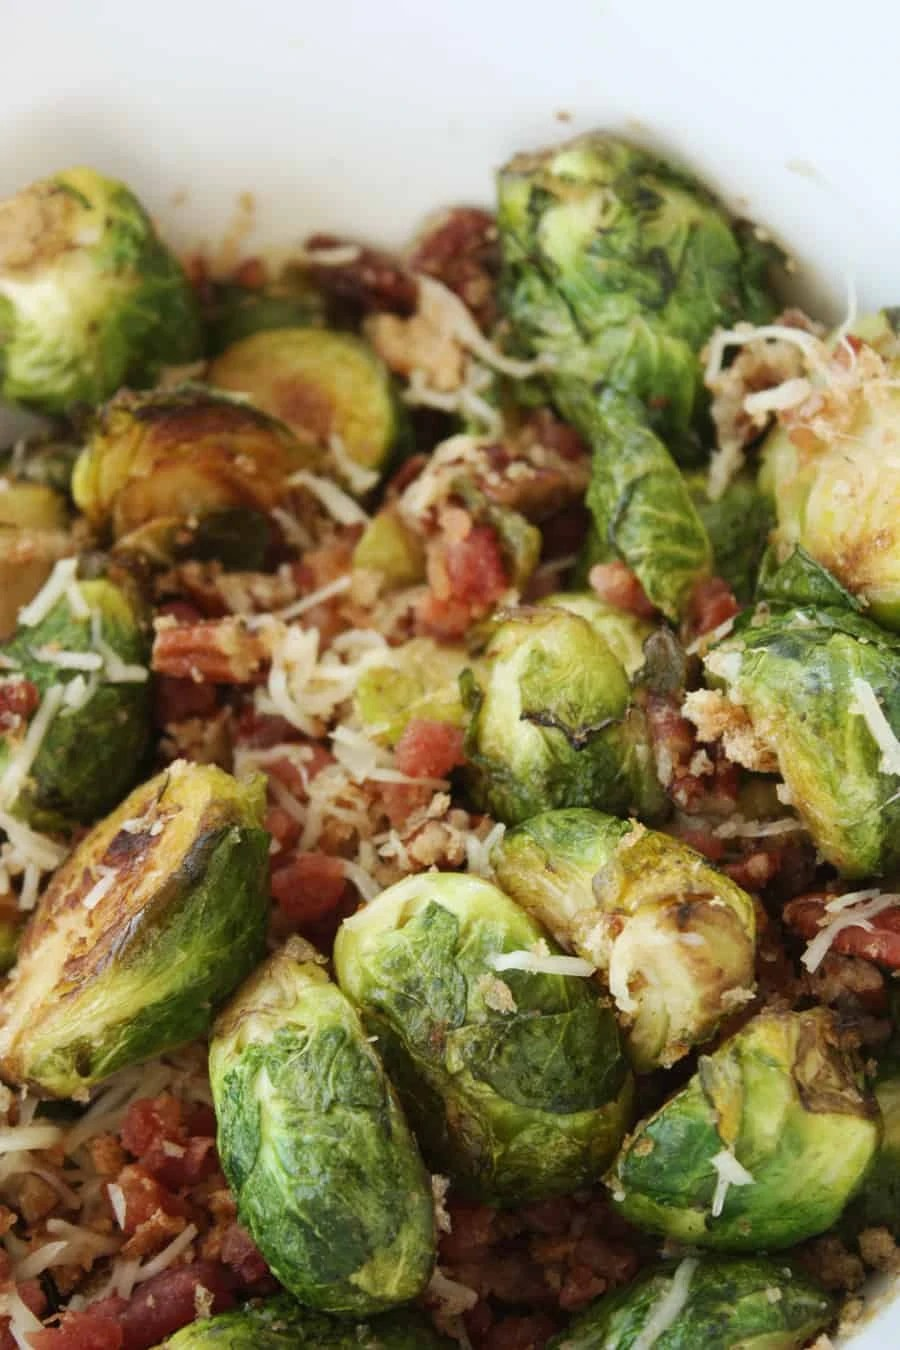 Pan fried brussel sprouts with all the fixings: I used to hate brussel sprouts, but now? I absolutely love and crave them. This recipe is definitely one to repeat! | via The Spirited Violet